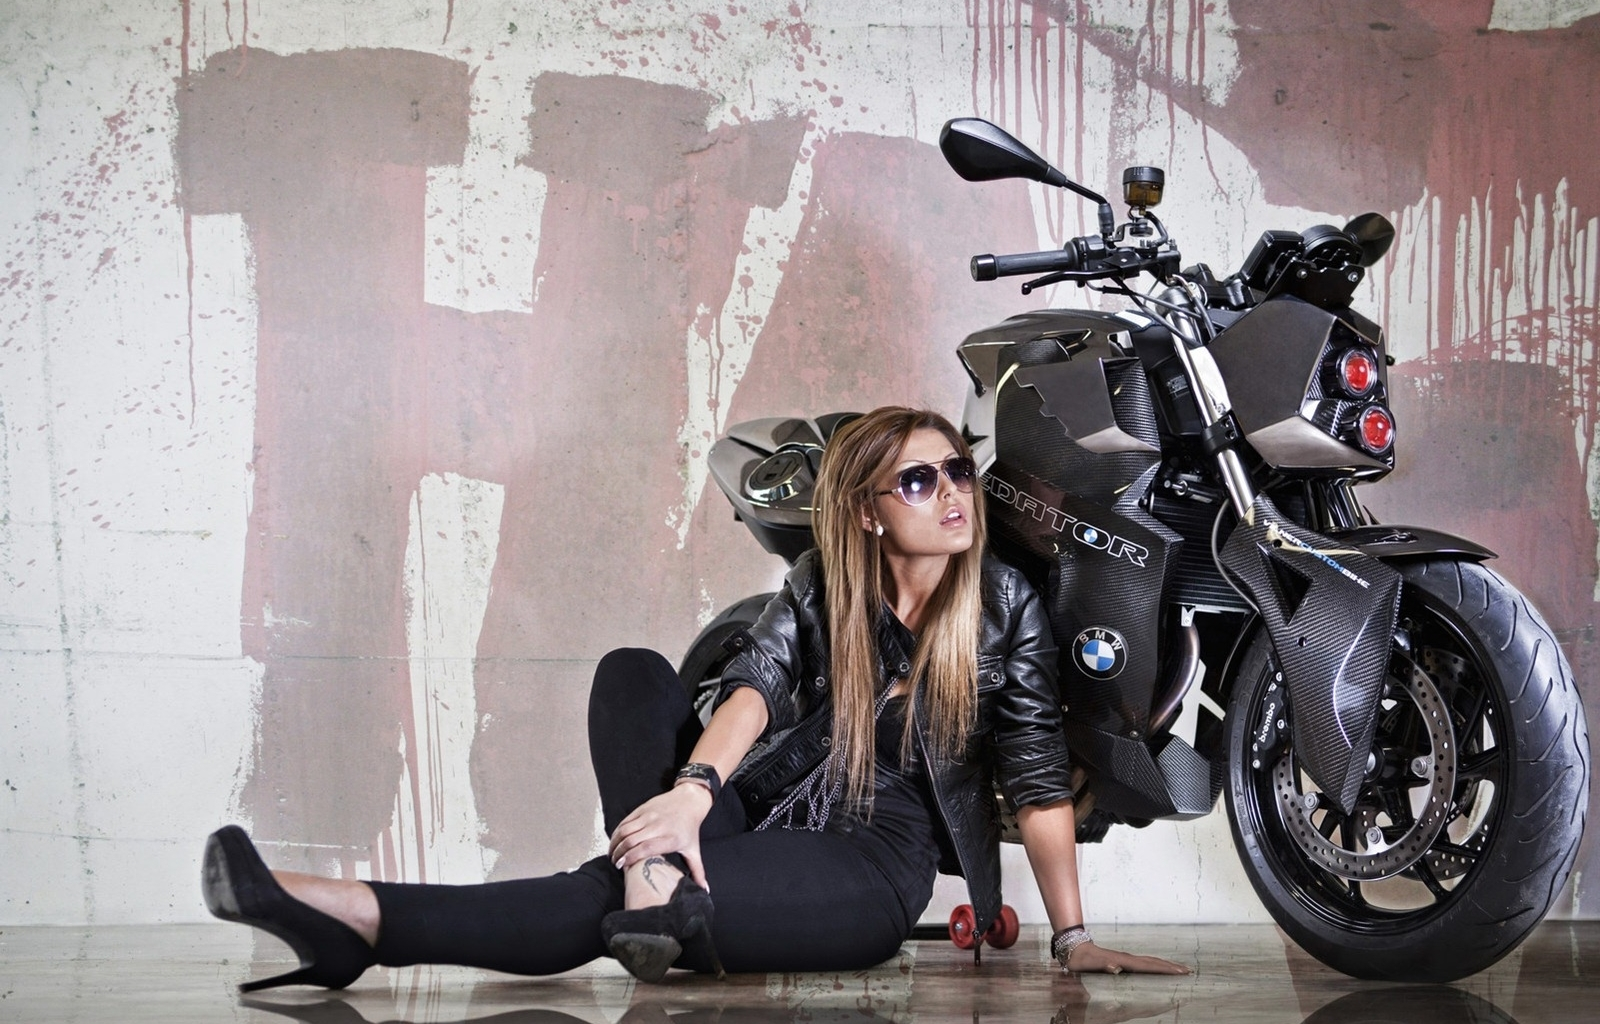 41591 download wallpaper People, Girls, Transport, Motorcycles screensavers and pictures for free